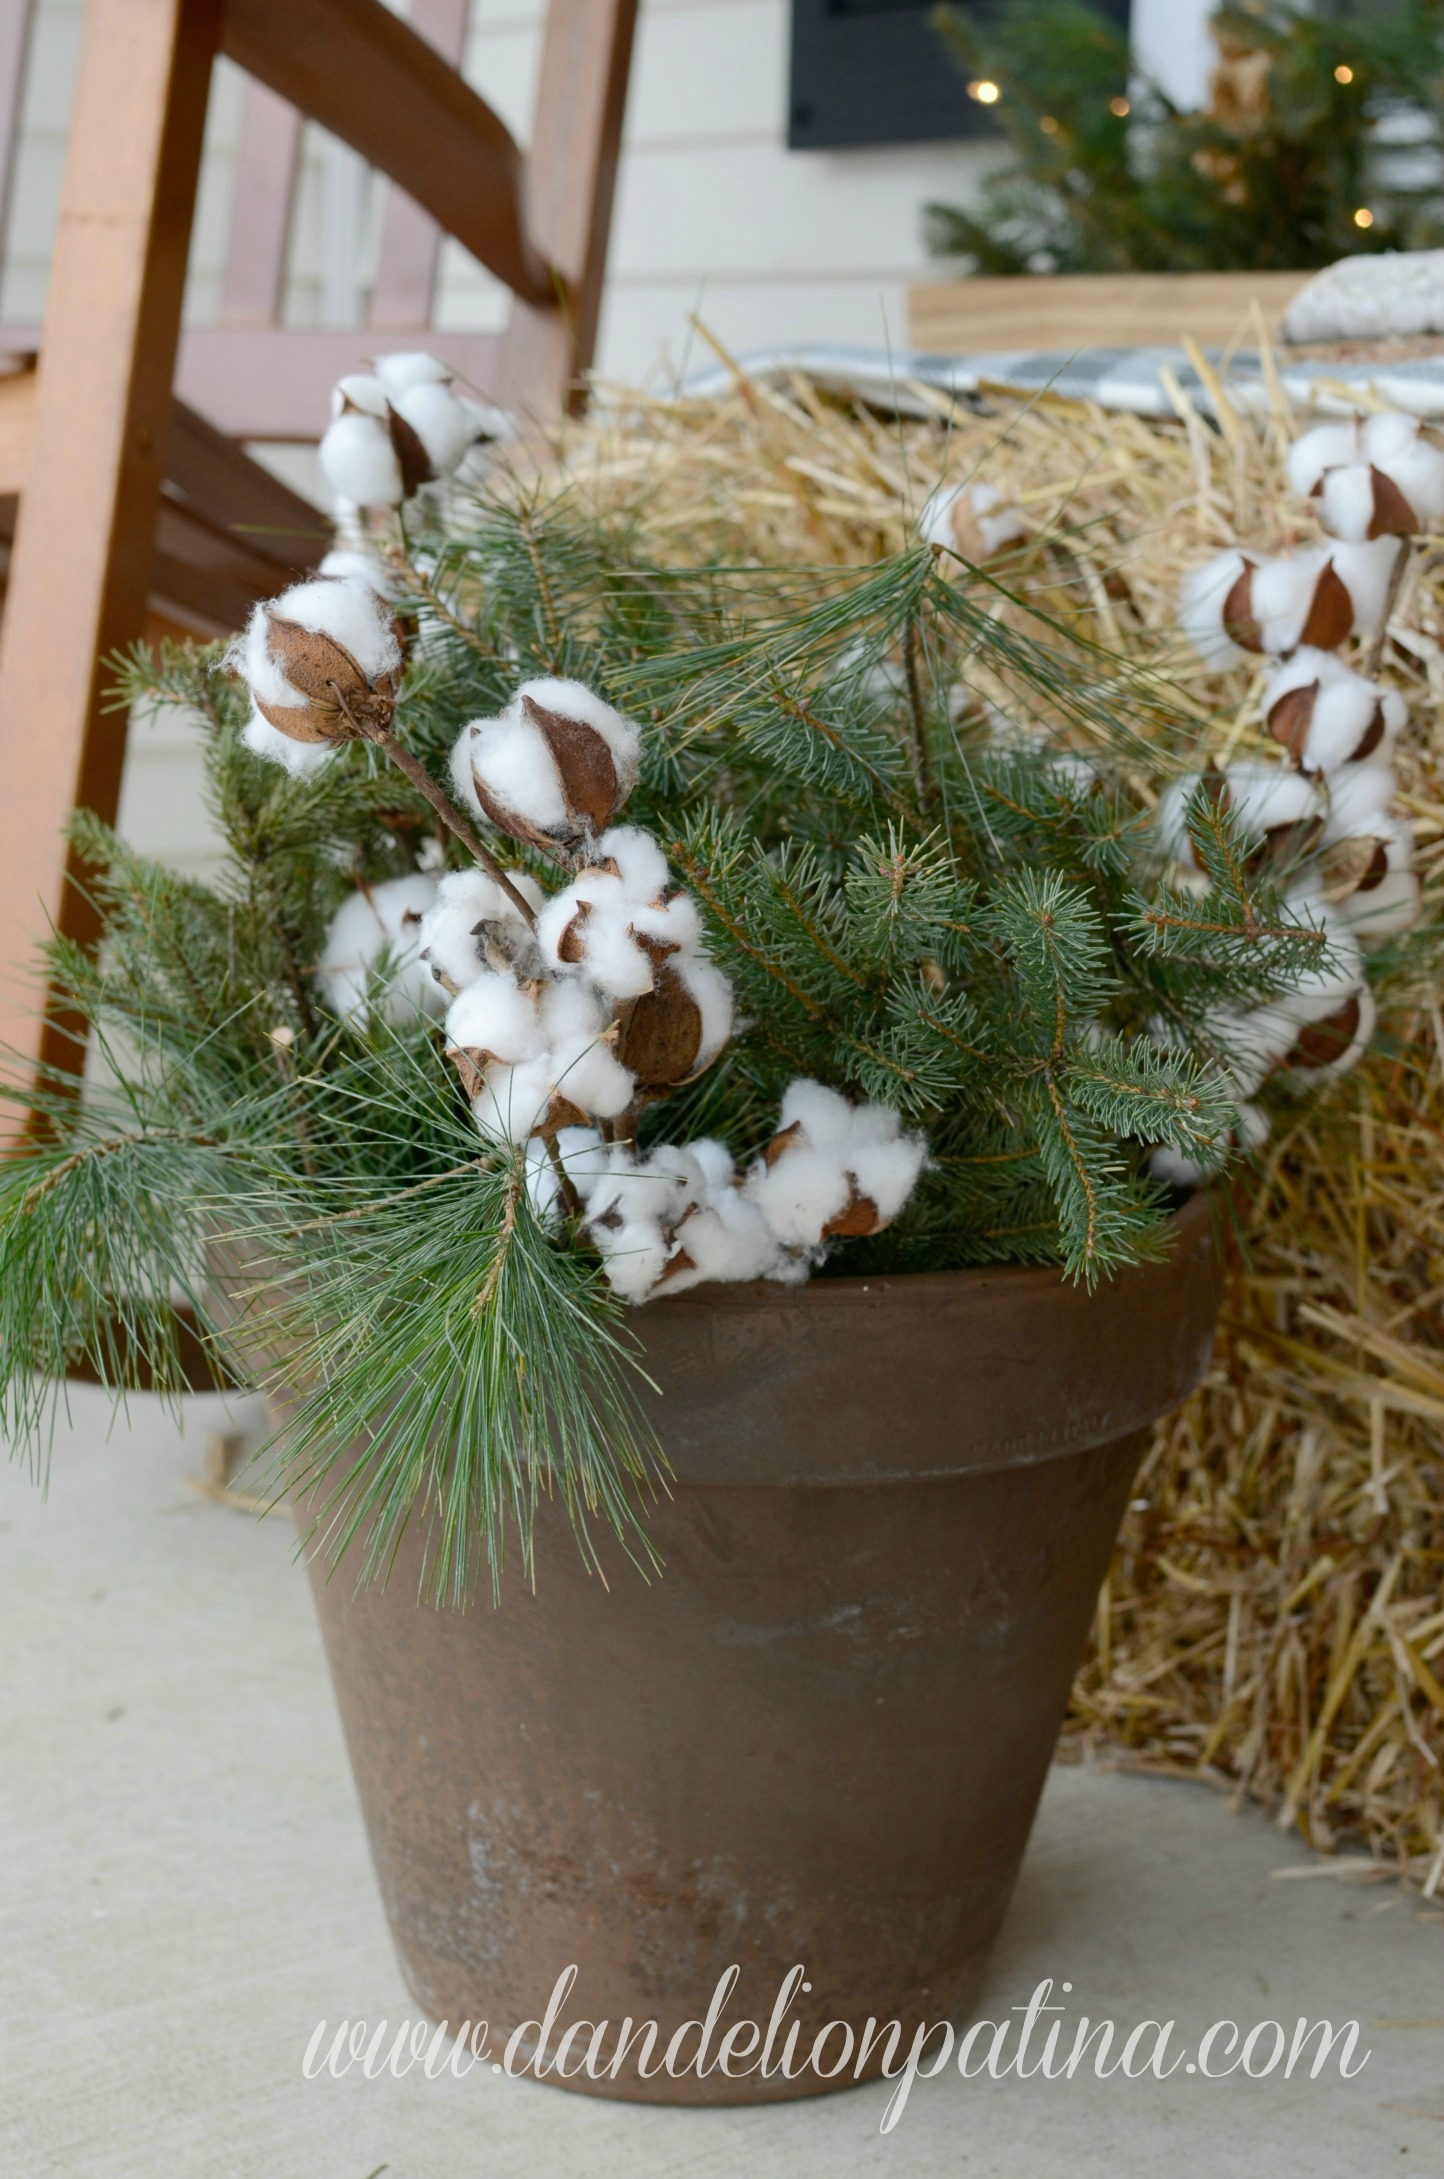 pine greenery and cotton boll